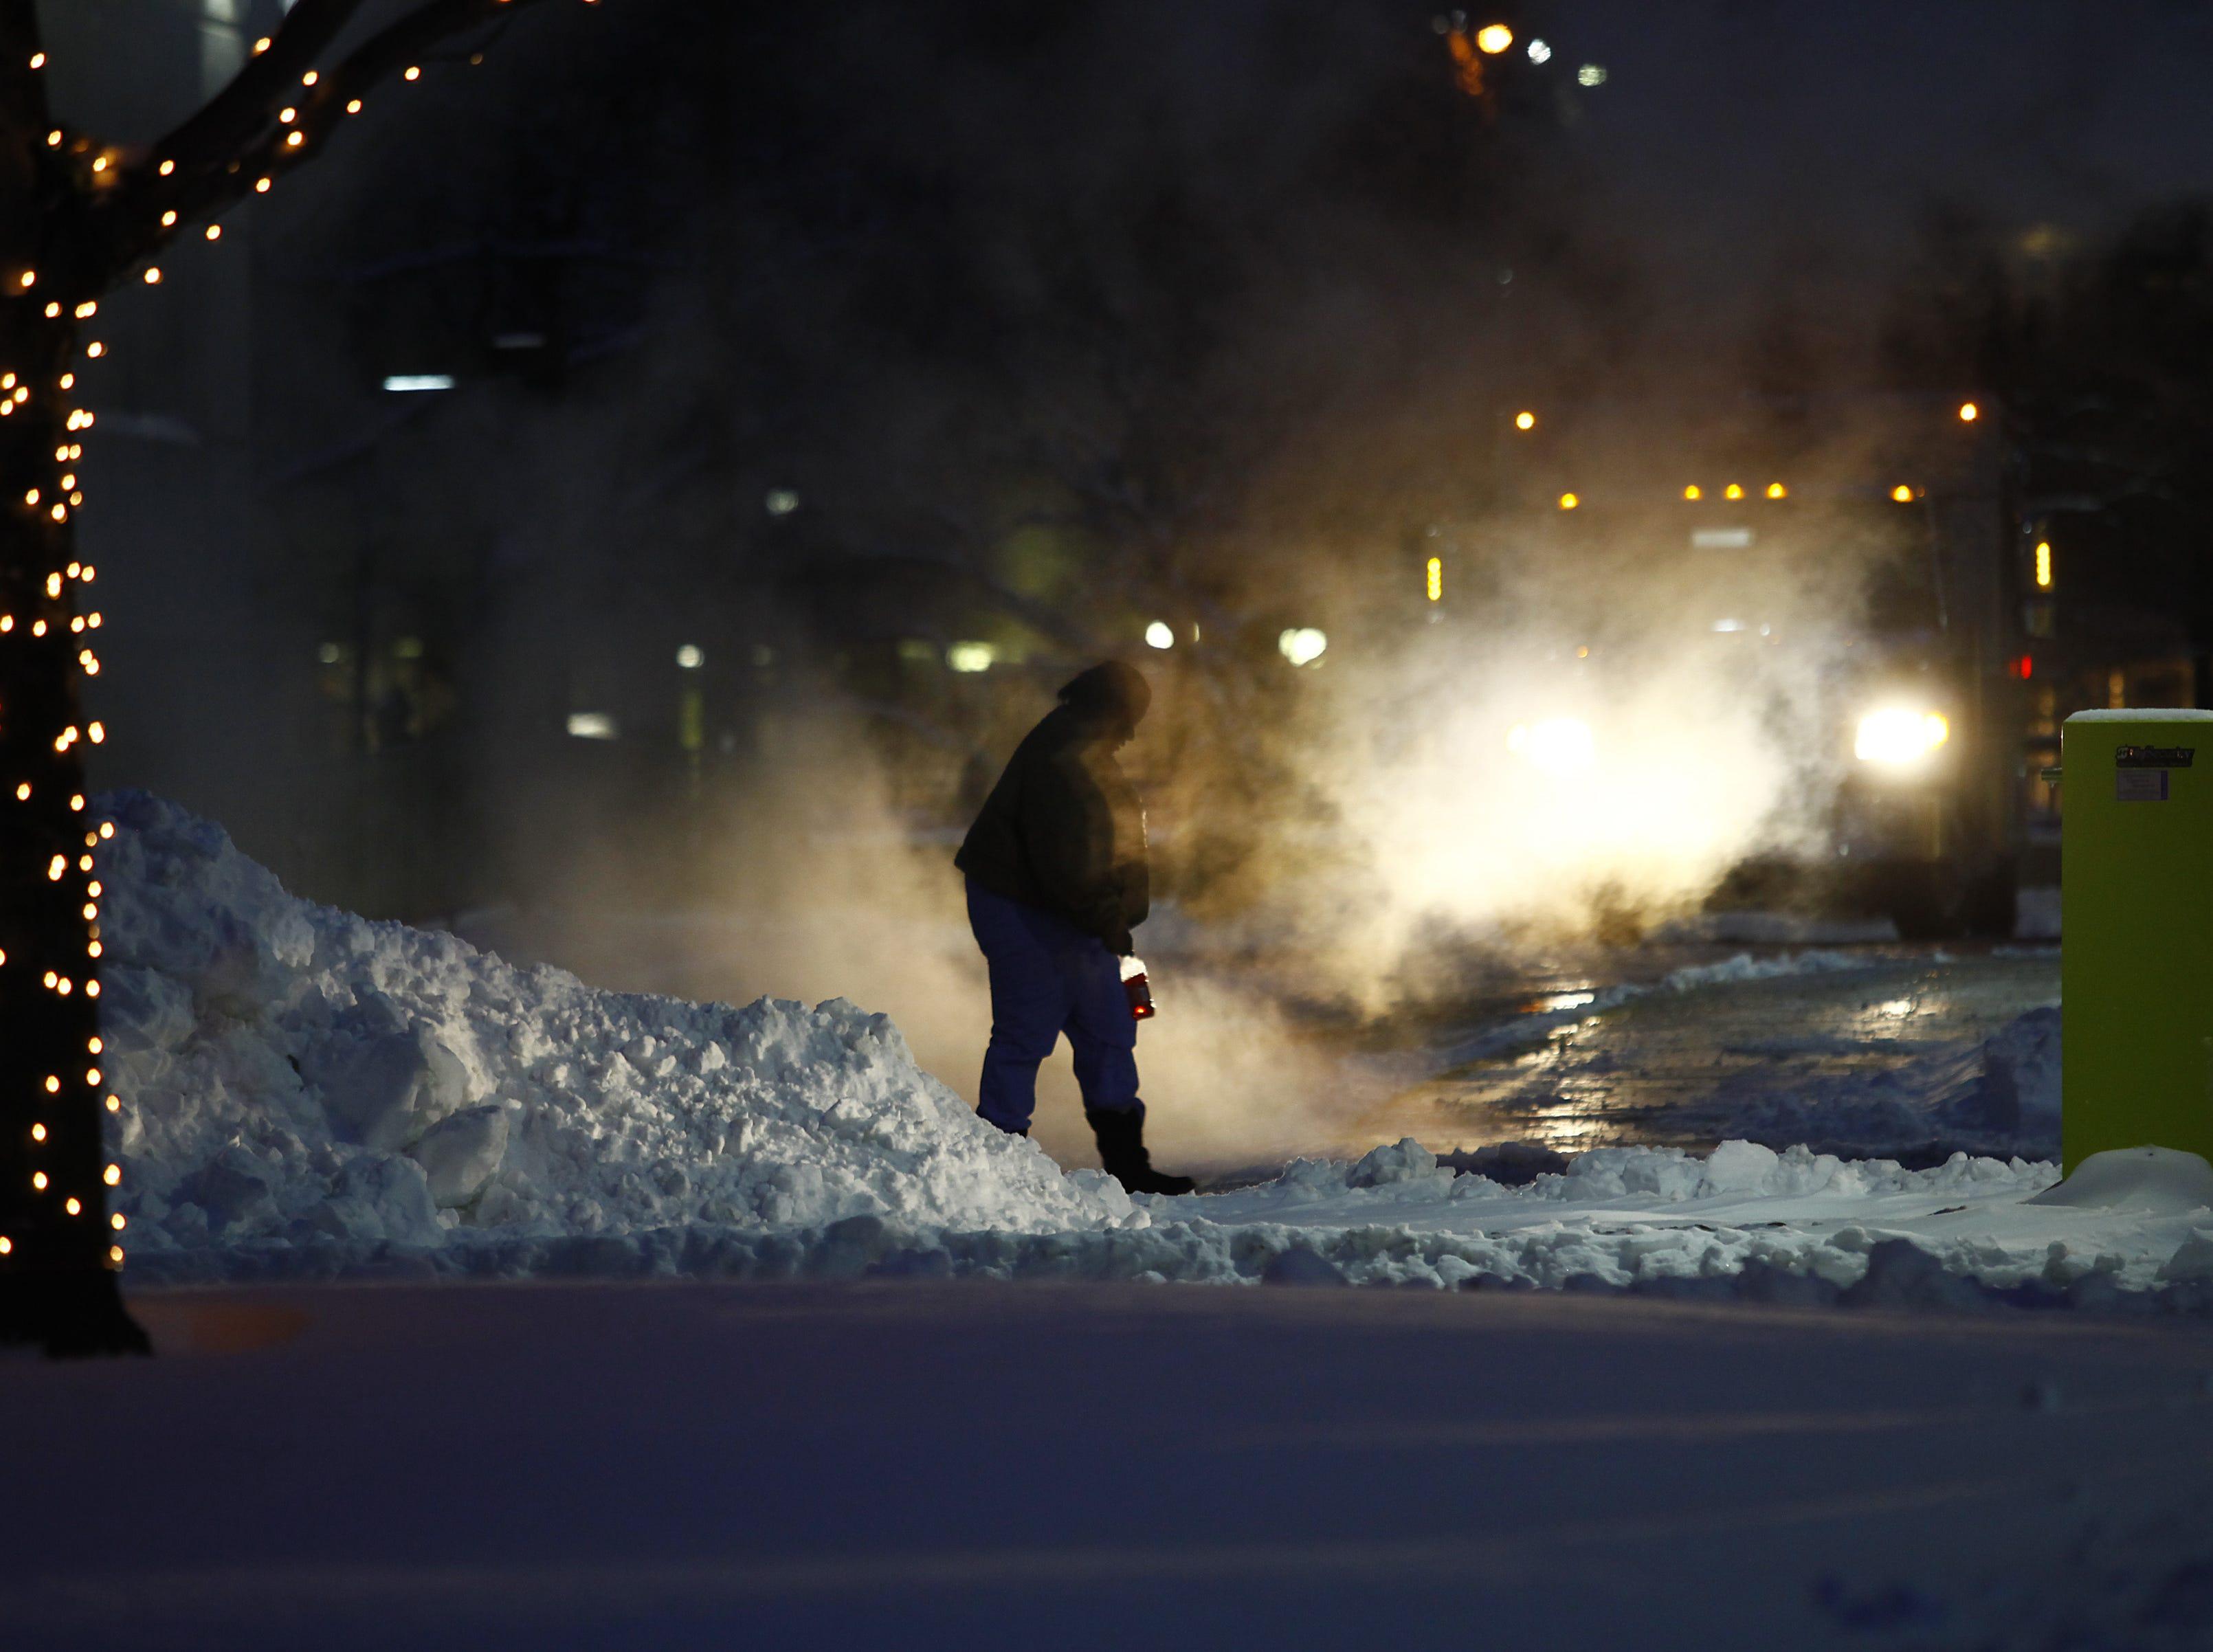 "A woman navigates around several inches of snow and steam as the area deals with record breaking freezing weather January 6, 2014 in Detroit, Michigan. Michigan and most of the Midwest received their first major snow storm of 2014 last week and subzero temperatures are expected most of this week with wind-chill driving temperatures down to 50-70 degrees below zero. A ""polar vortex"" weather pattern is bringing some of the coldest weather the U.S. has had in almost 20 years."